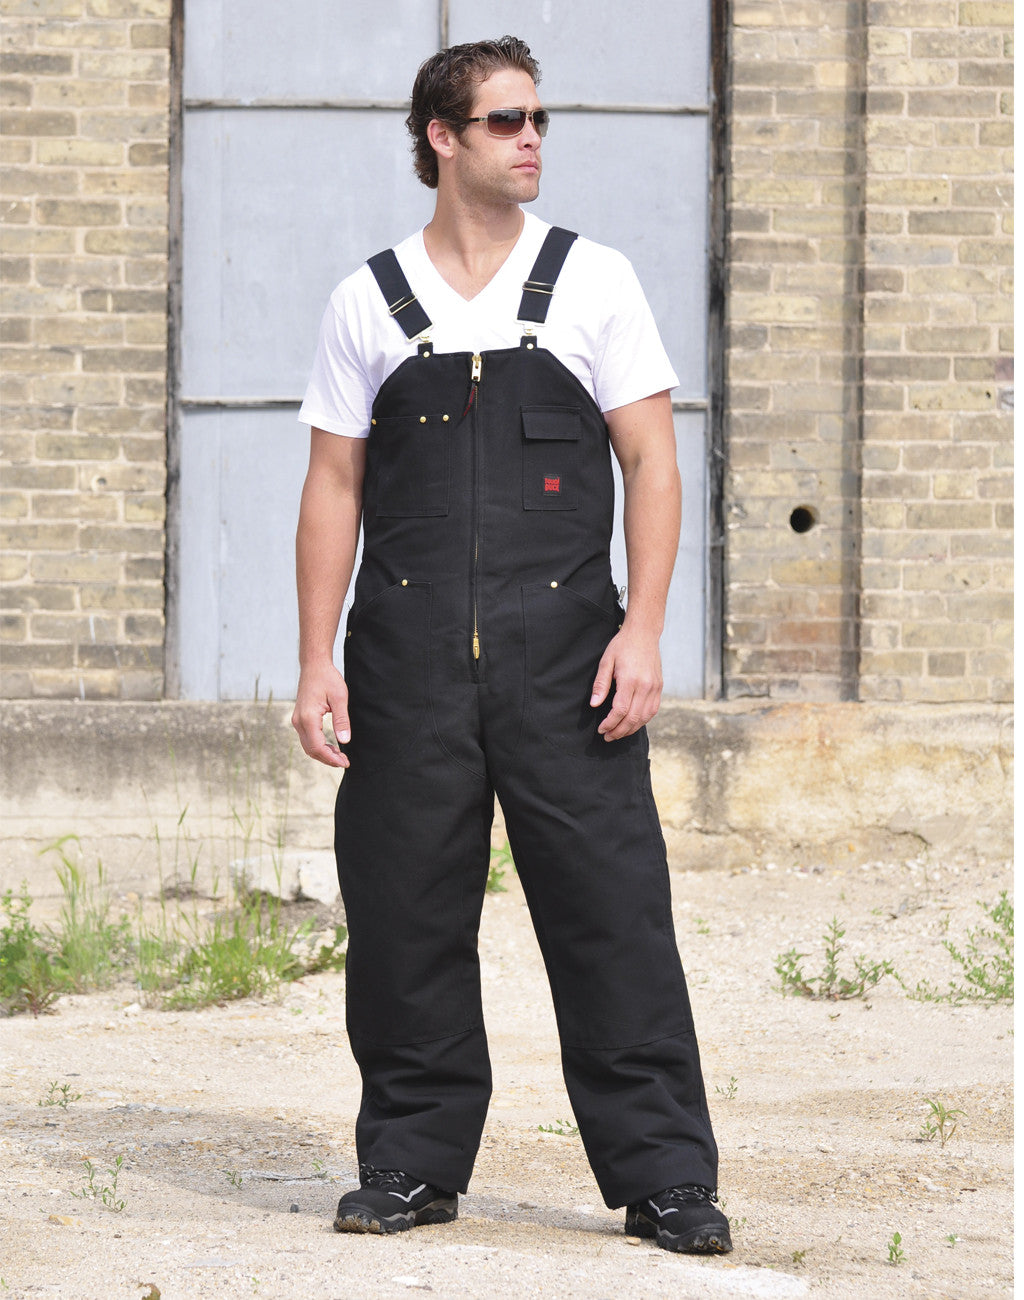 Richlu Insulated Bib Overall